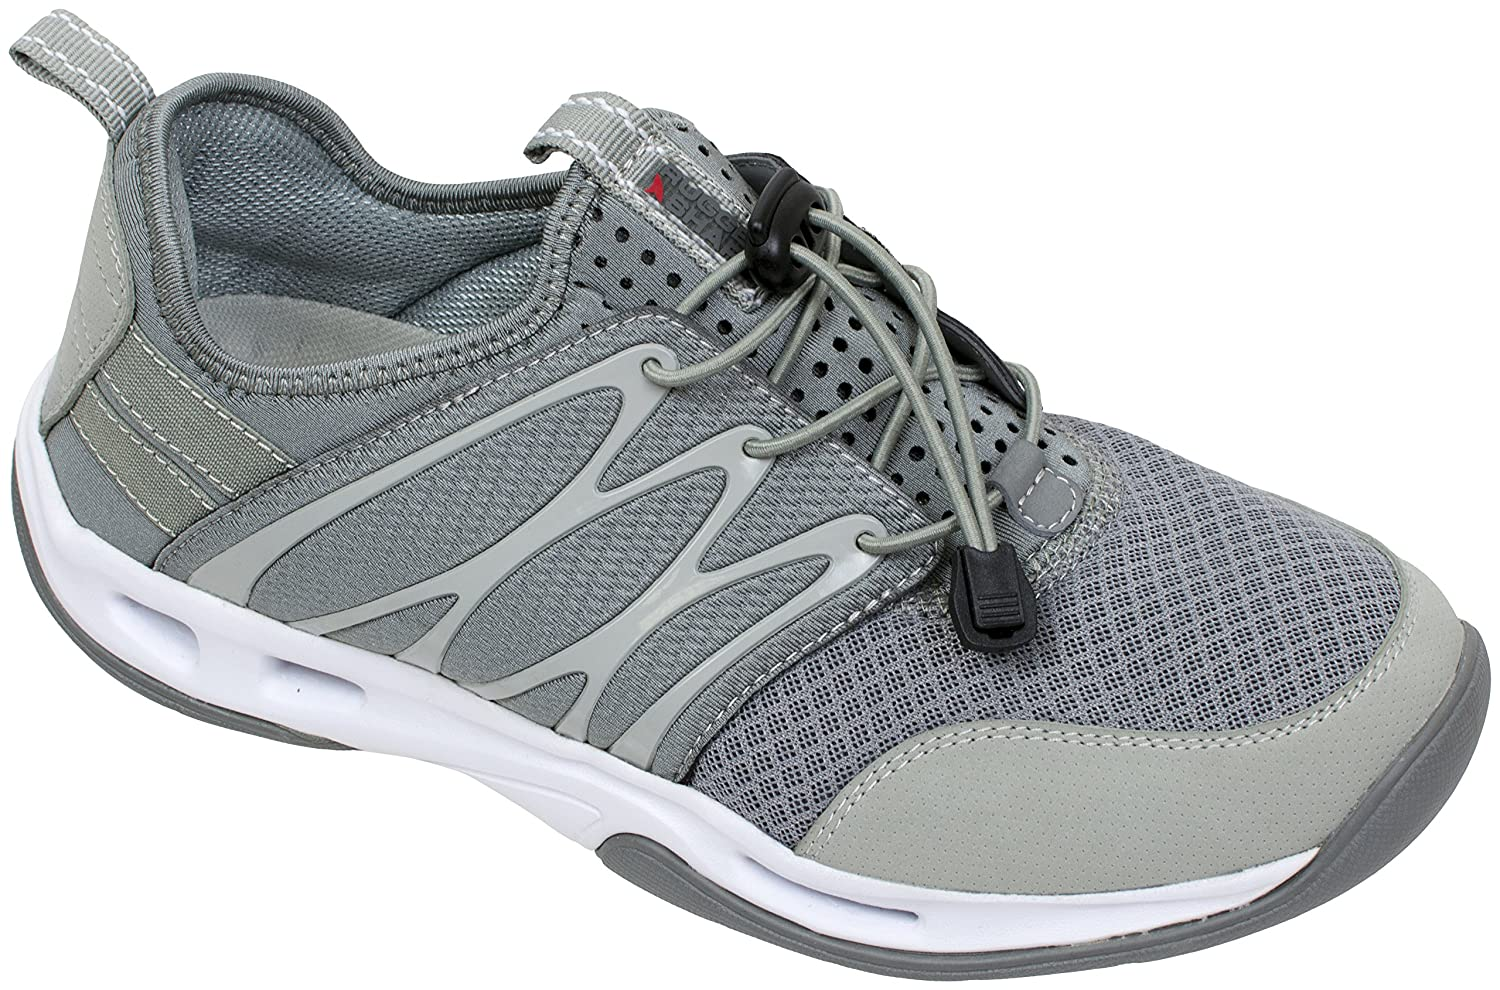 Rugged Shark Men's Slip-On Athletic Sneaker,Starboard, Breatheable Stretch Mesh, Size 8 to 13